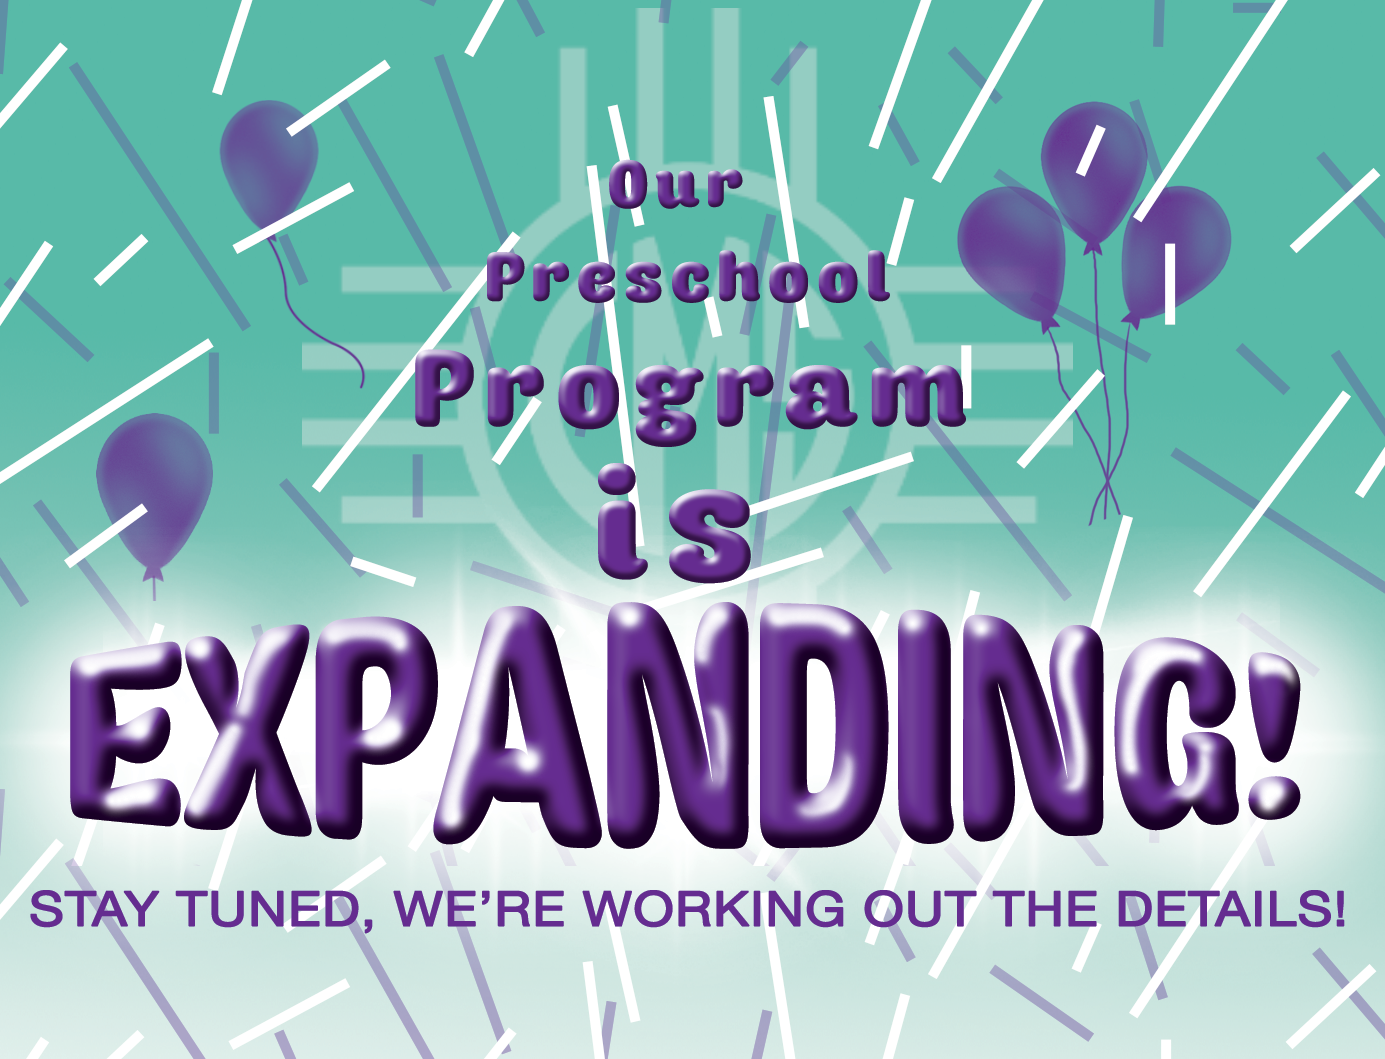 Image with text announcing funding for preschool expansion